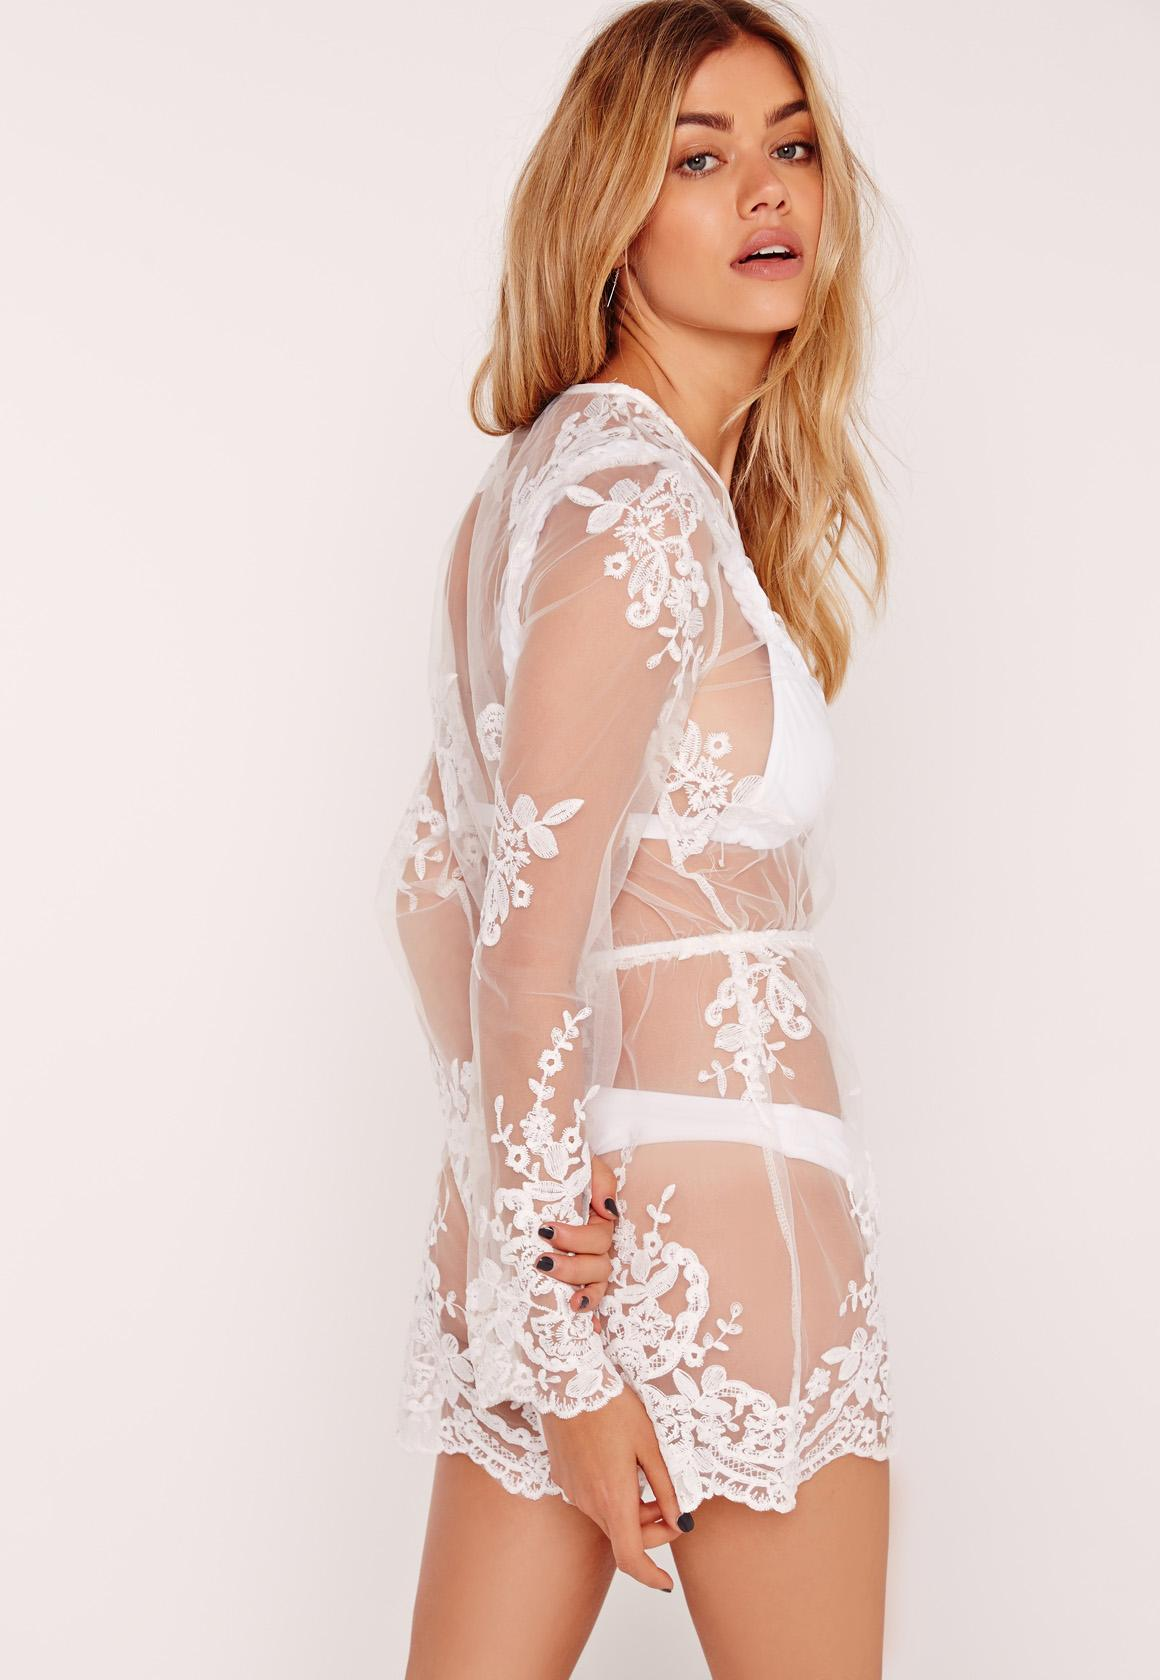 d163c9b81e4 Missguided Organza Lace Beach Playsuit White at £9.5